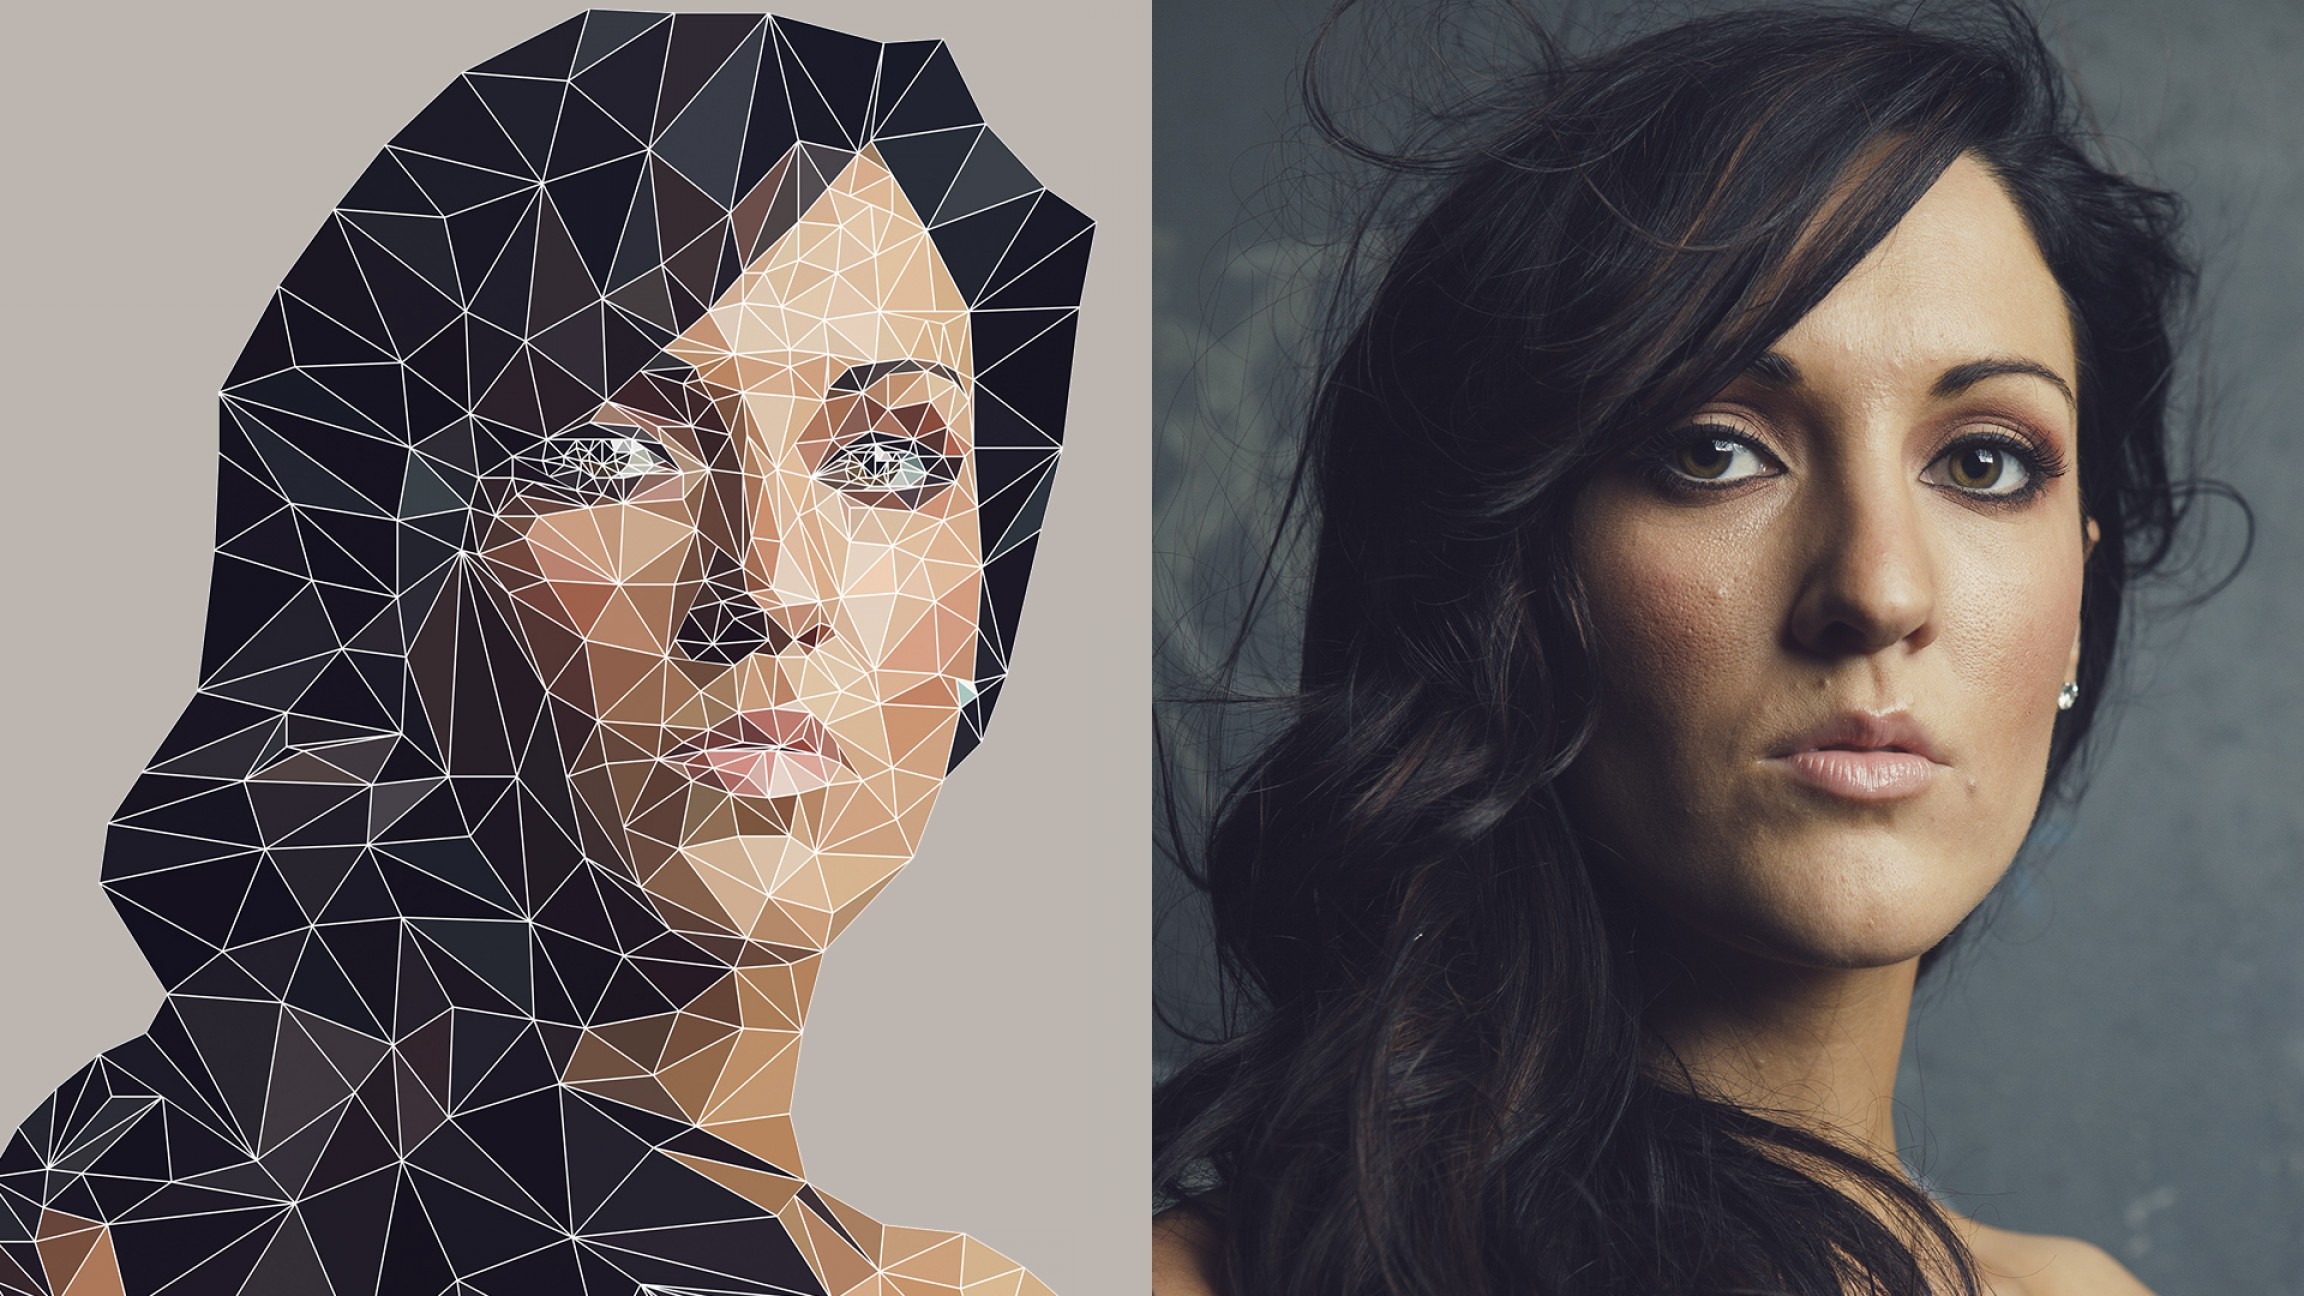 Pixelation Photoshop Vector: Low Poly Geometric Effect In Photoshop Only